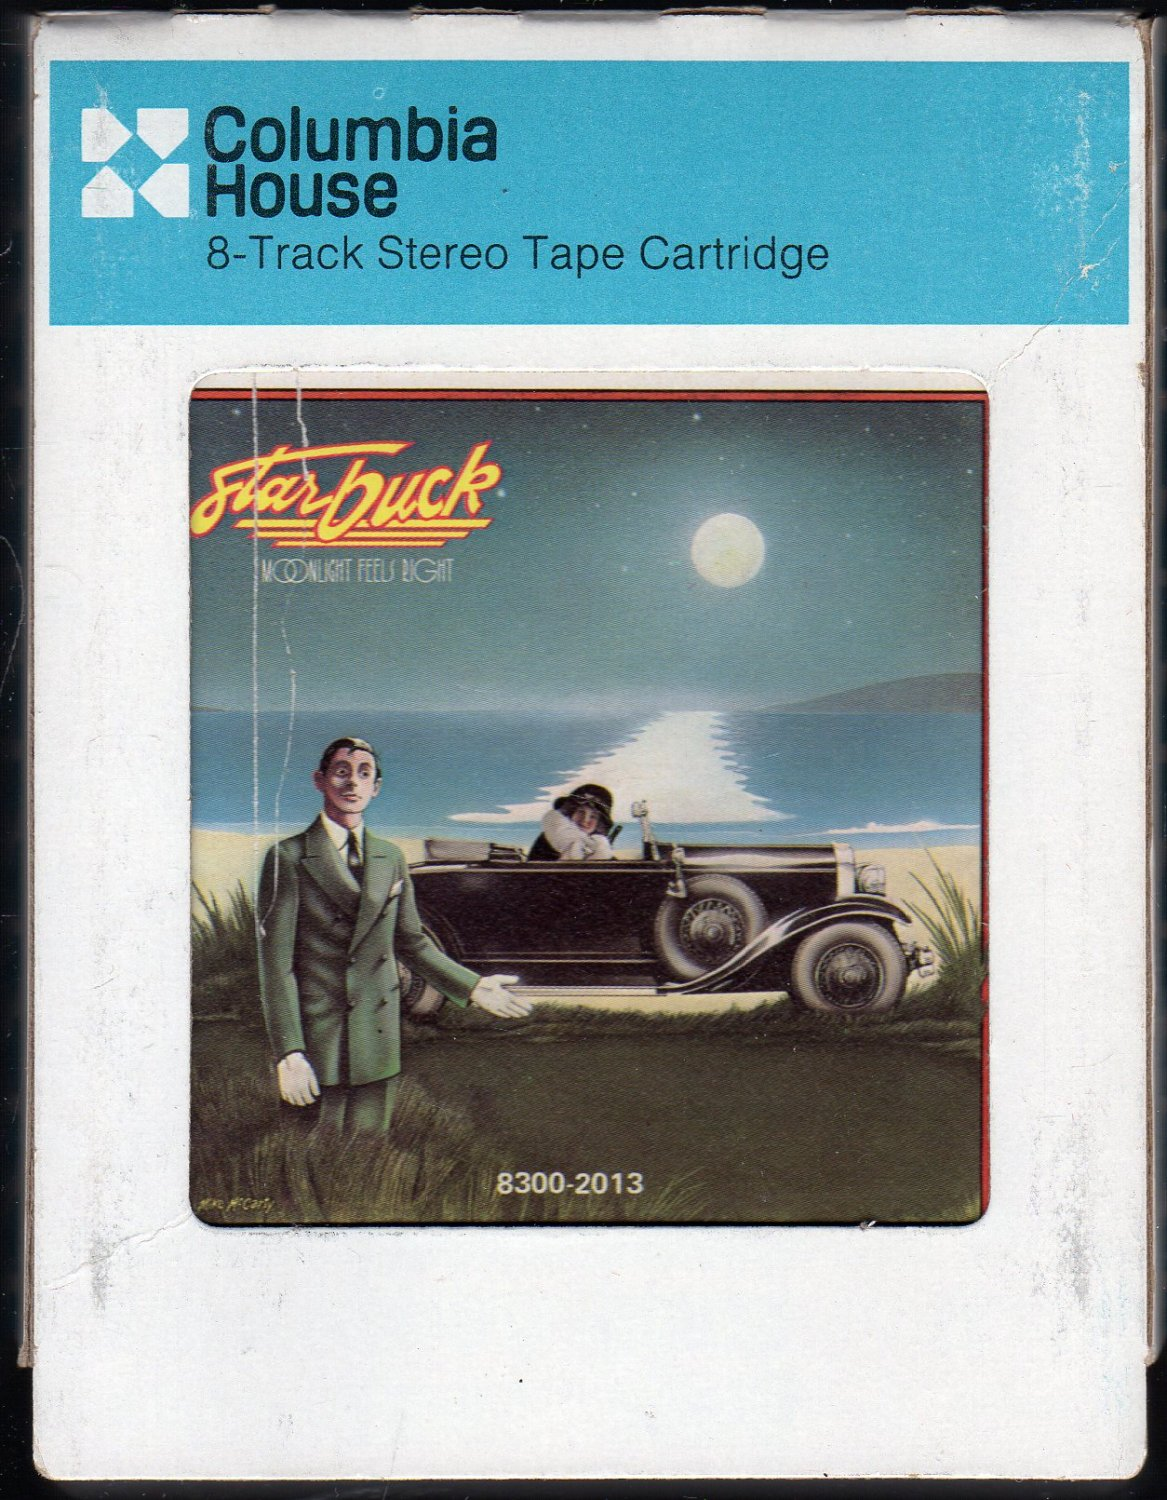 Starbuck - Moonlight Feels Right 1976 CRC A7 8-track tape